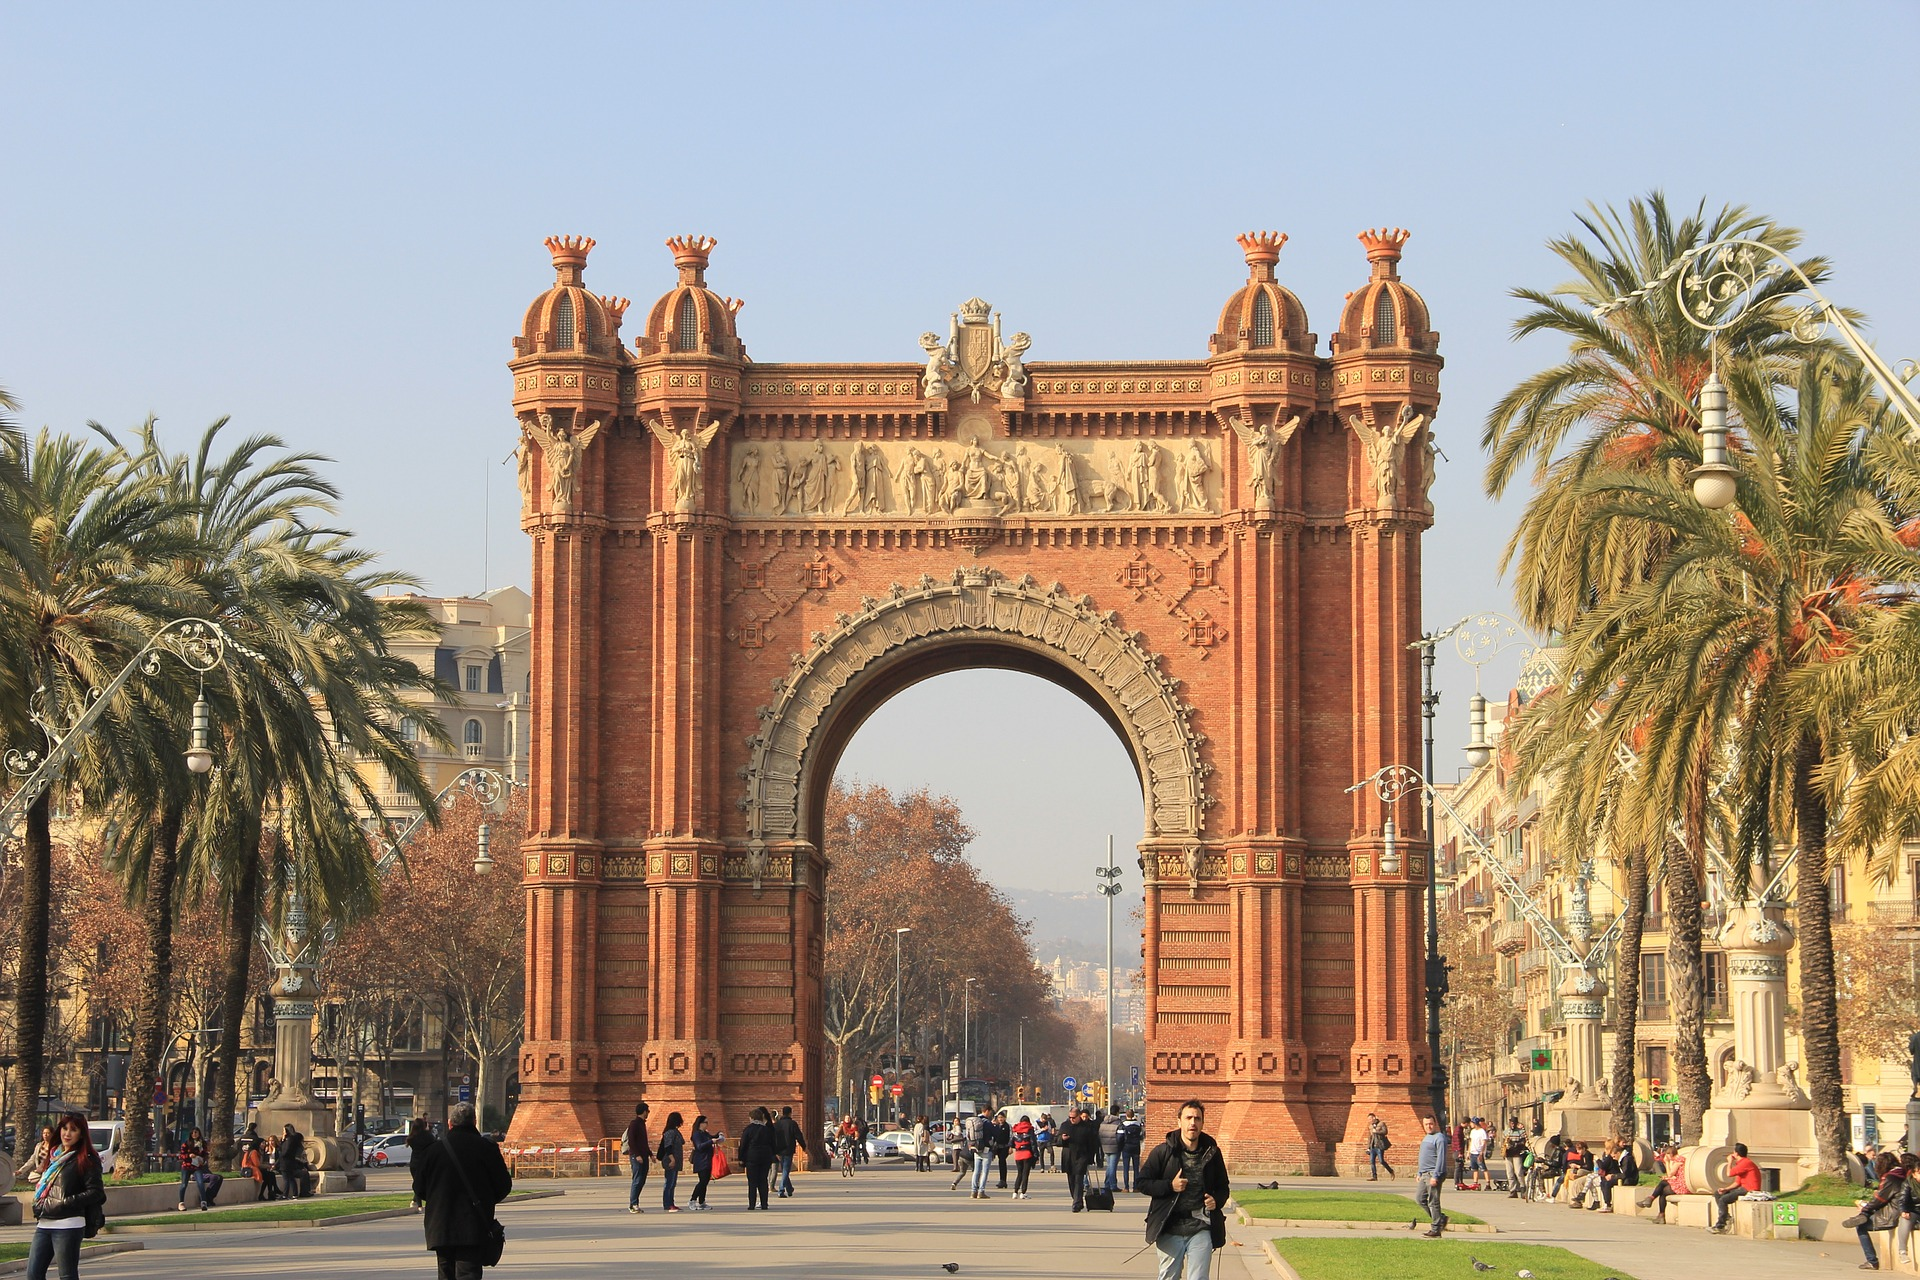 July 17: Arrive in Barcelona - You'll arrive in Barcelona this morning and be met by your driver at the airport to take you to your hotel.Spend the say wondering through one of the most famous cities in Spain. This City is full of beautiful architecture, history and amazing food.